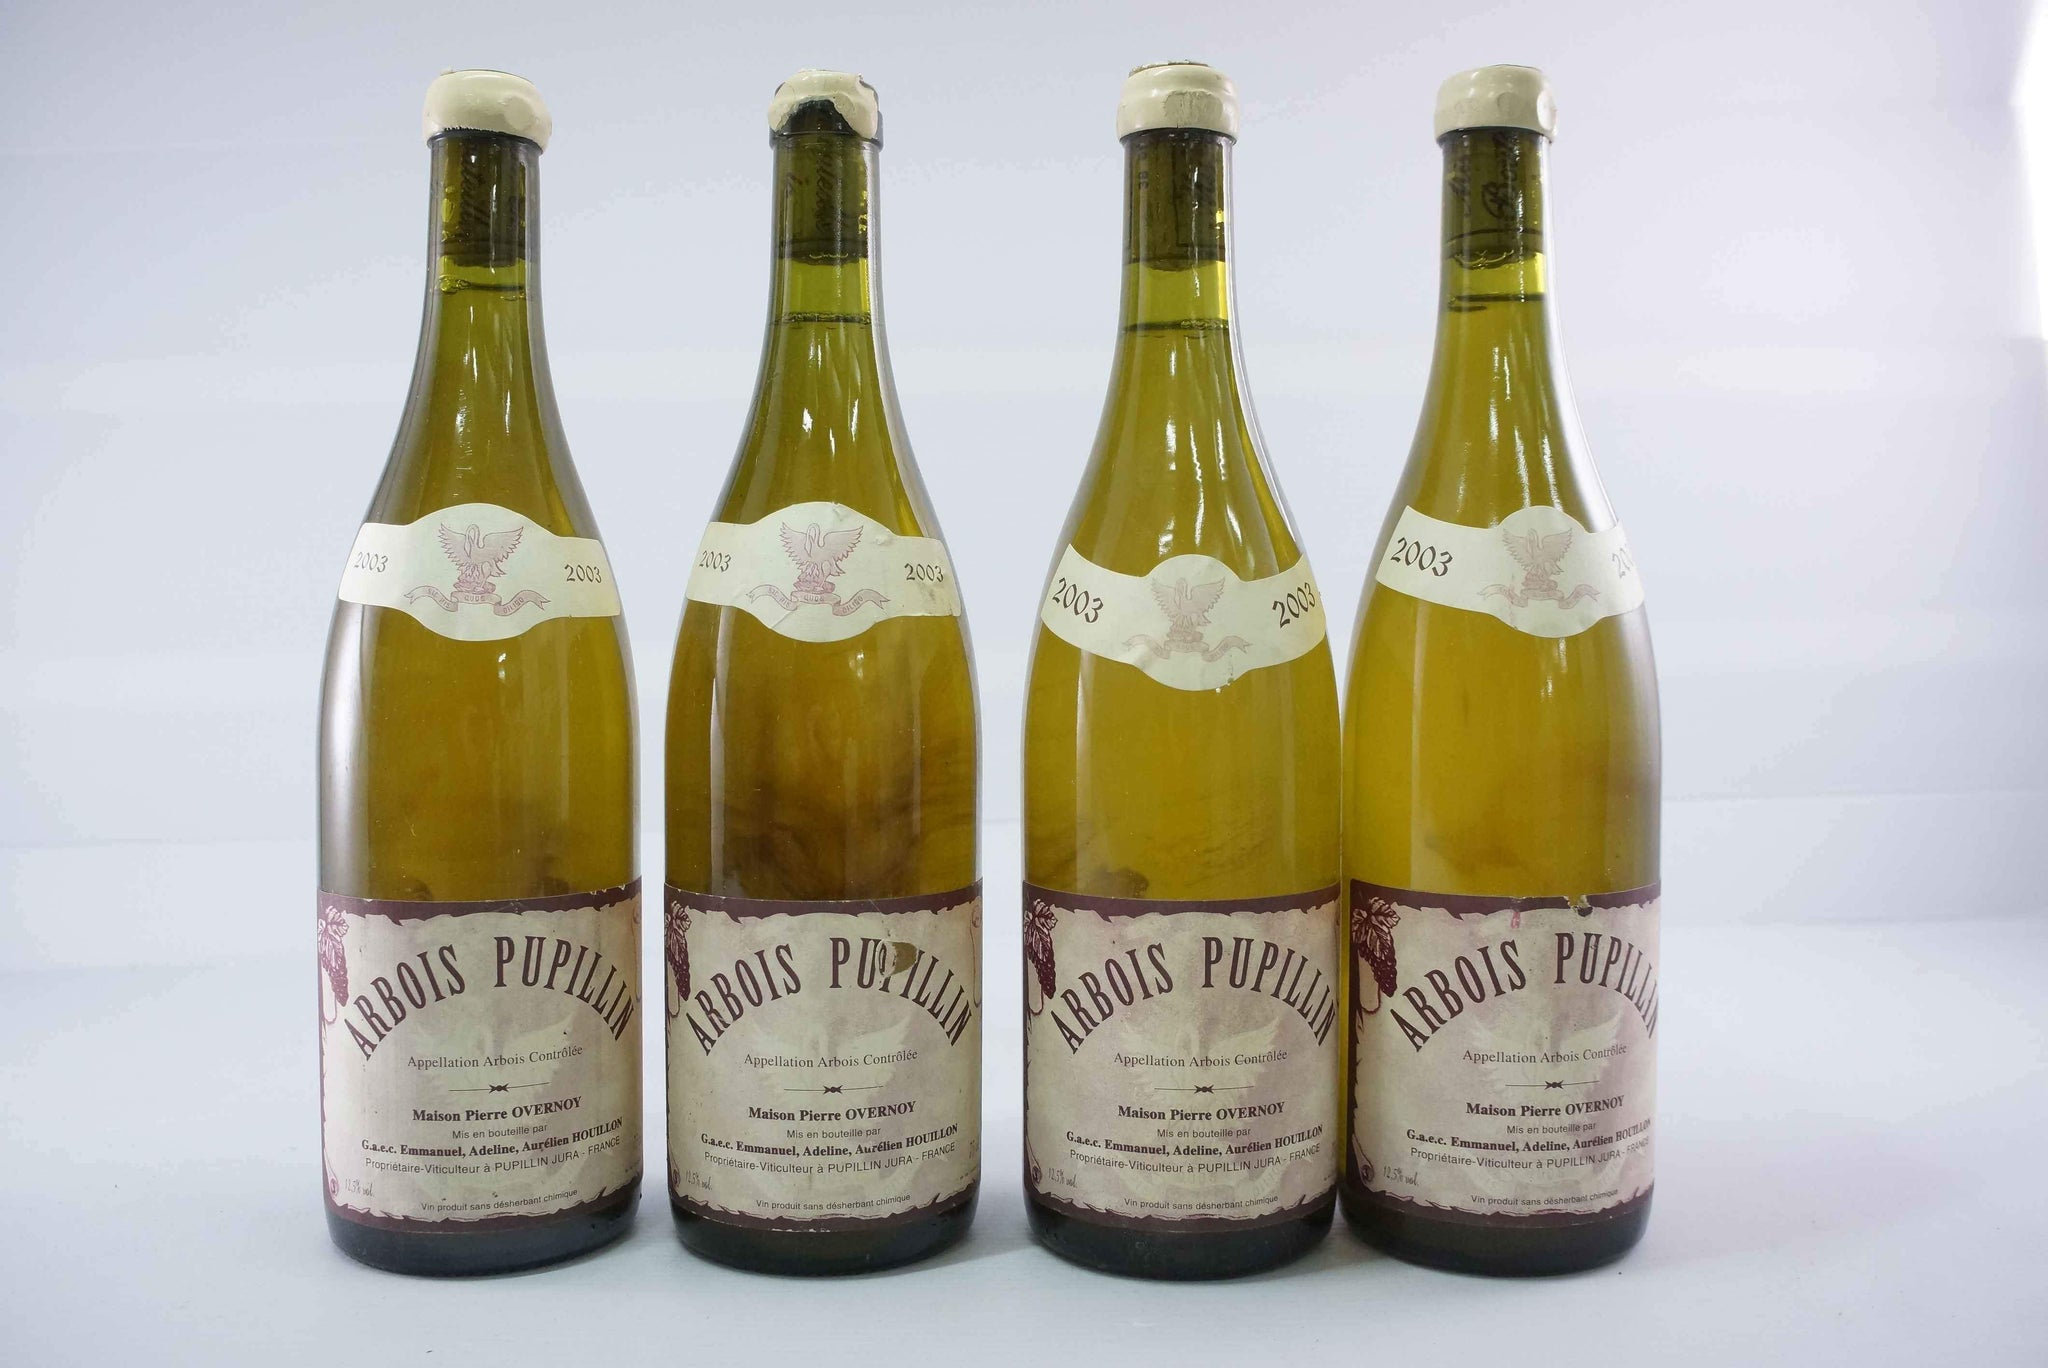 Pierre Overnoy Arbois Pupillin Chardonnay 2003 *